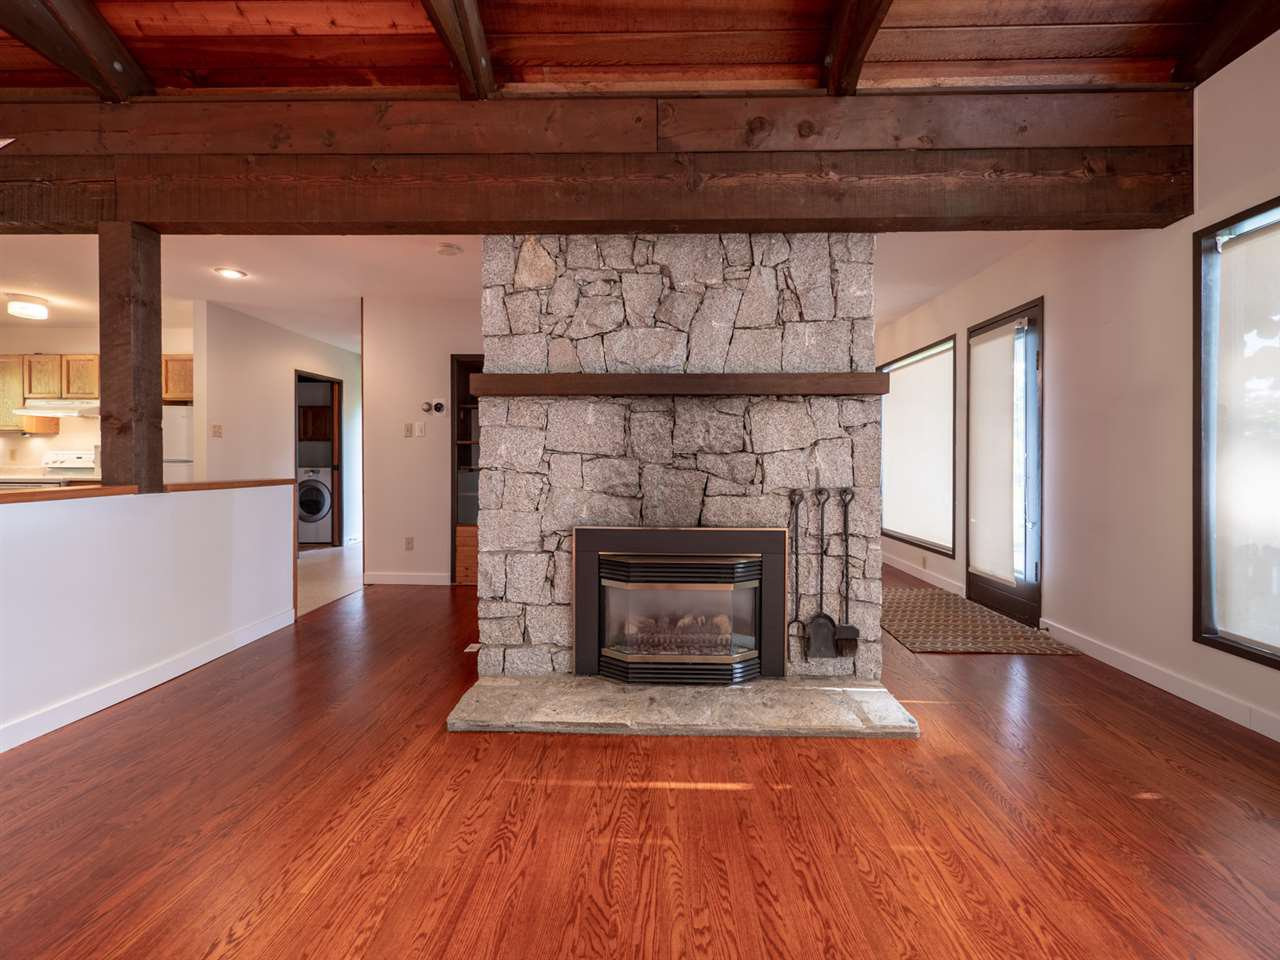 Photo 12: Photos: 877 GOWER POINT Road in Gibsons: Gibsons & Area House for sale (Sunshine Coast)  : MLS®# R2419918